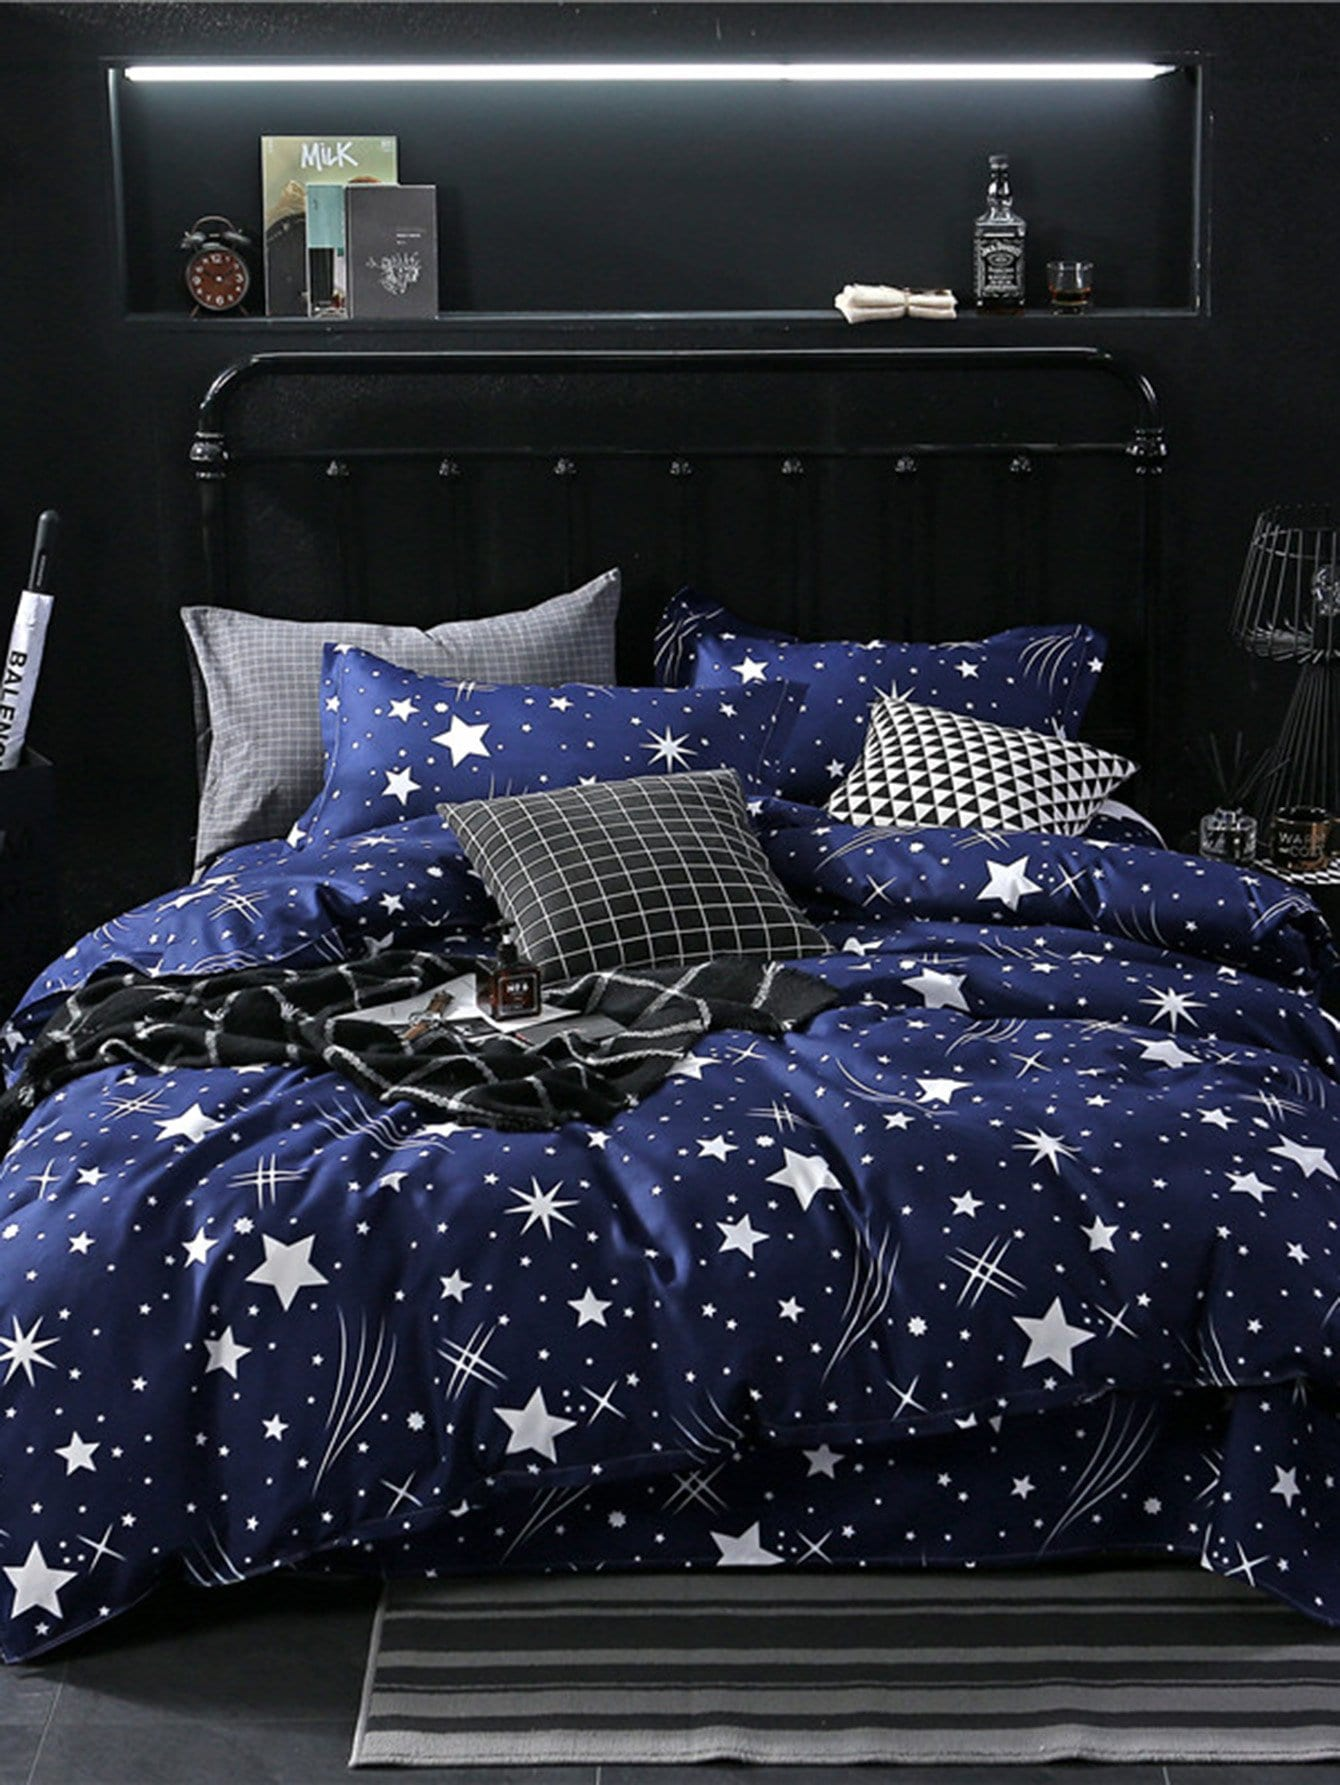 Allover Star Print Sheet Set allover star print sheet set